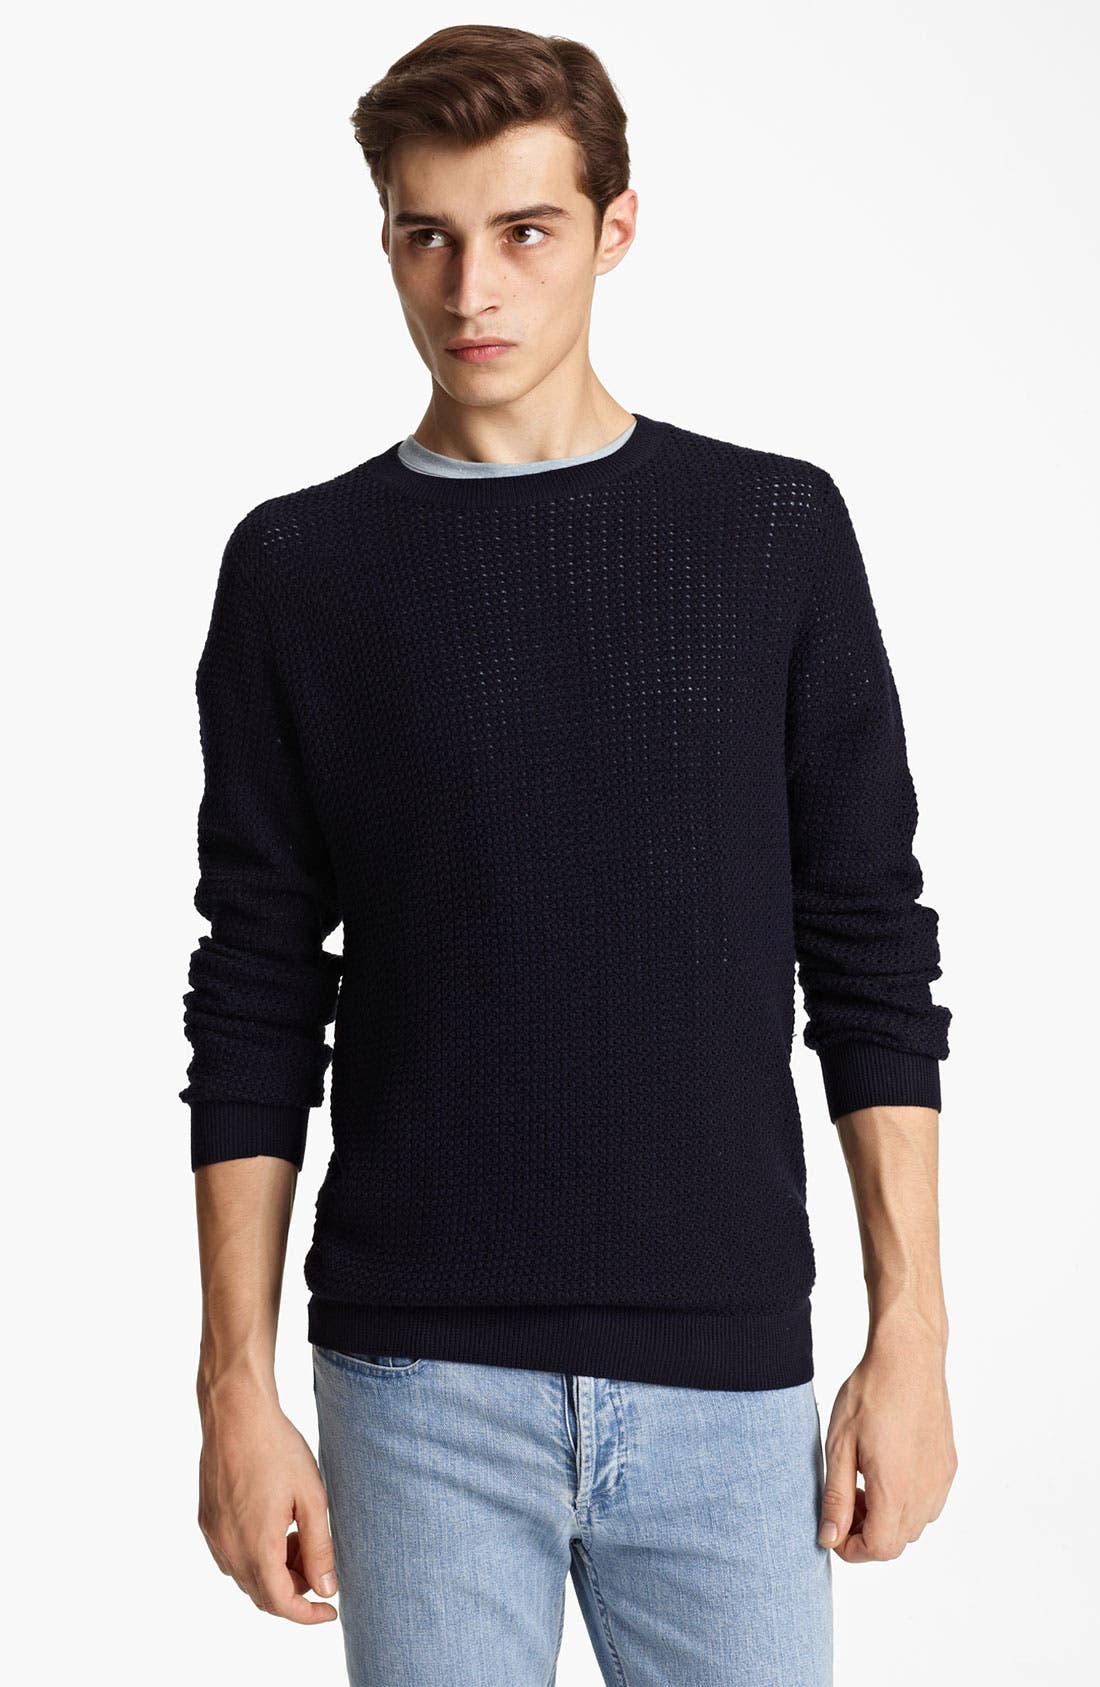 Alternate Image 1 Selected - A.P.C. Perforated Crewneck Sweater